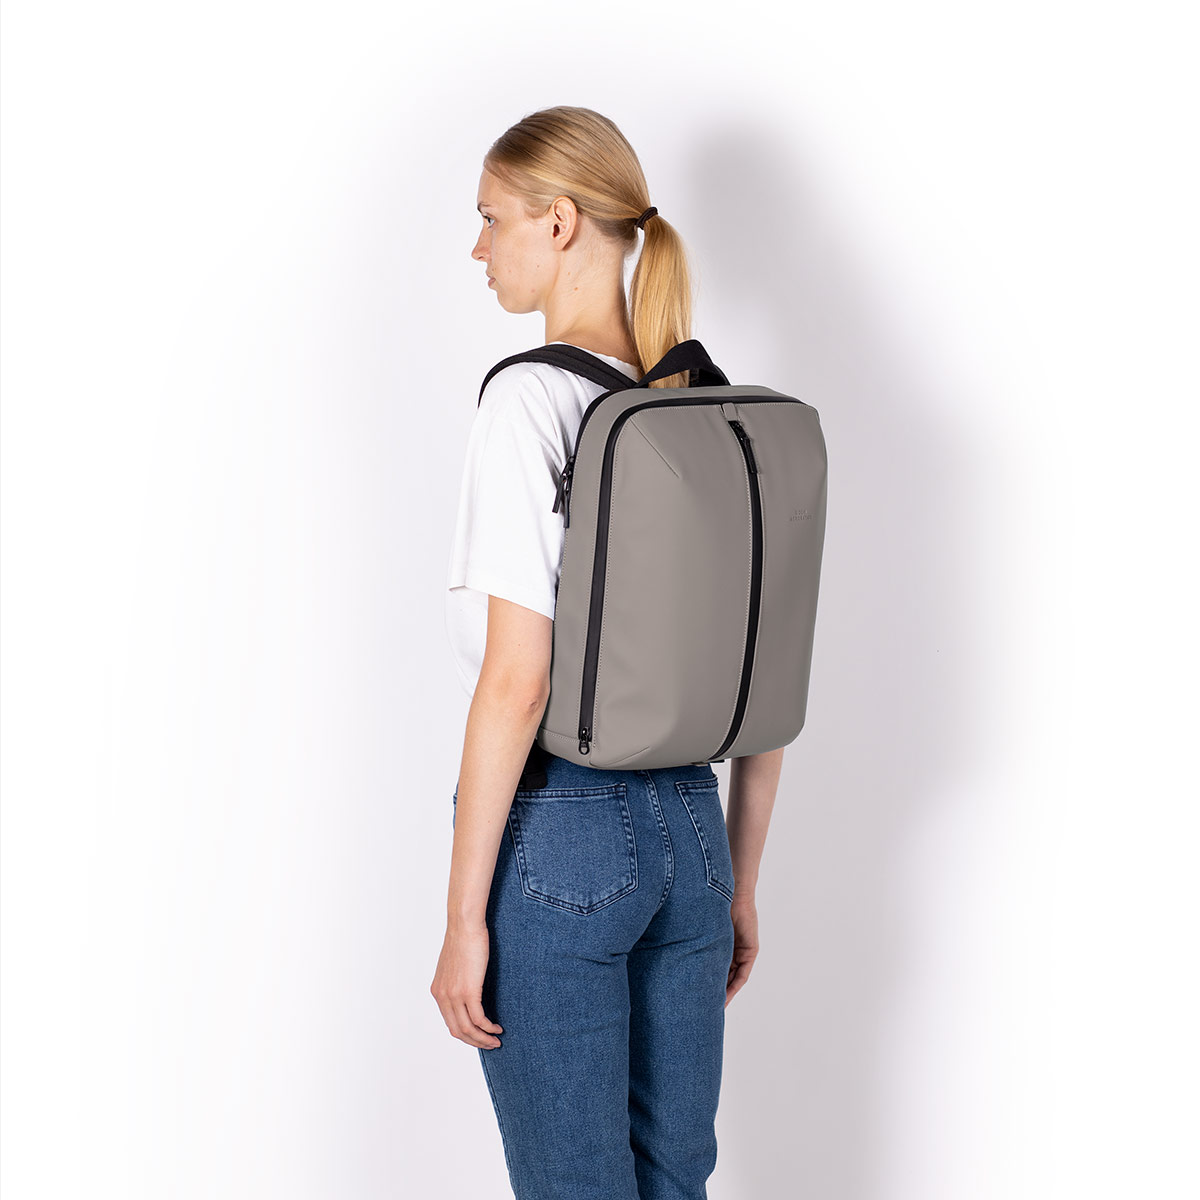 UA_Janne-Backpack_Lotus-Series_Dark-Grey_09